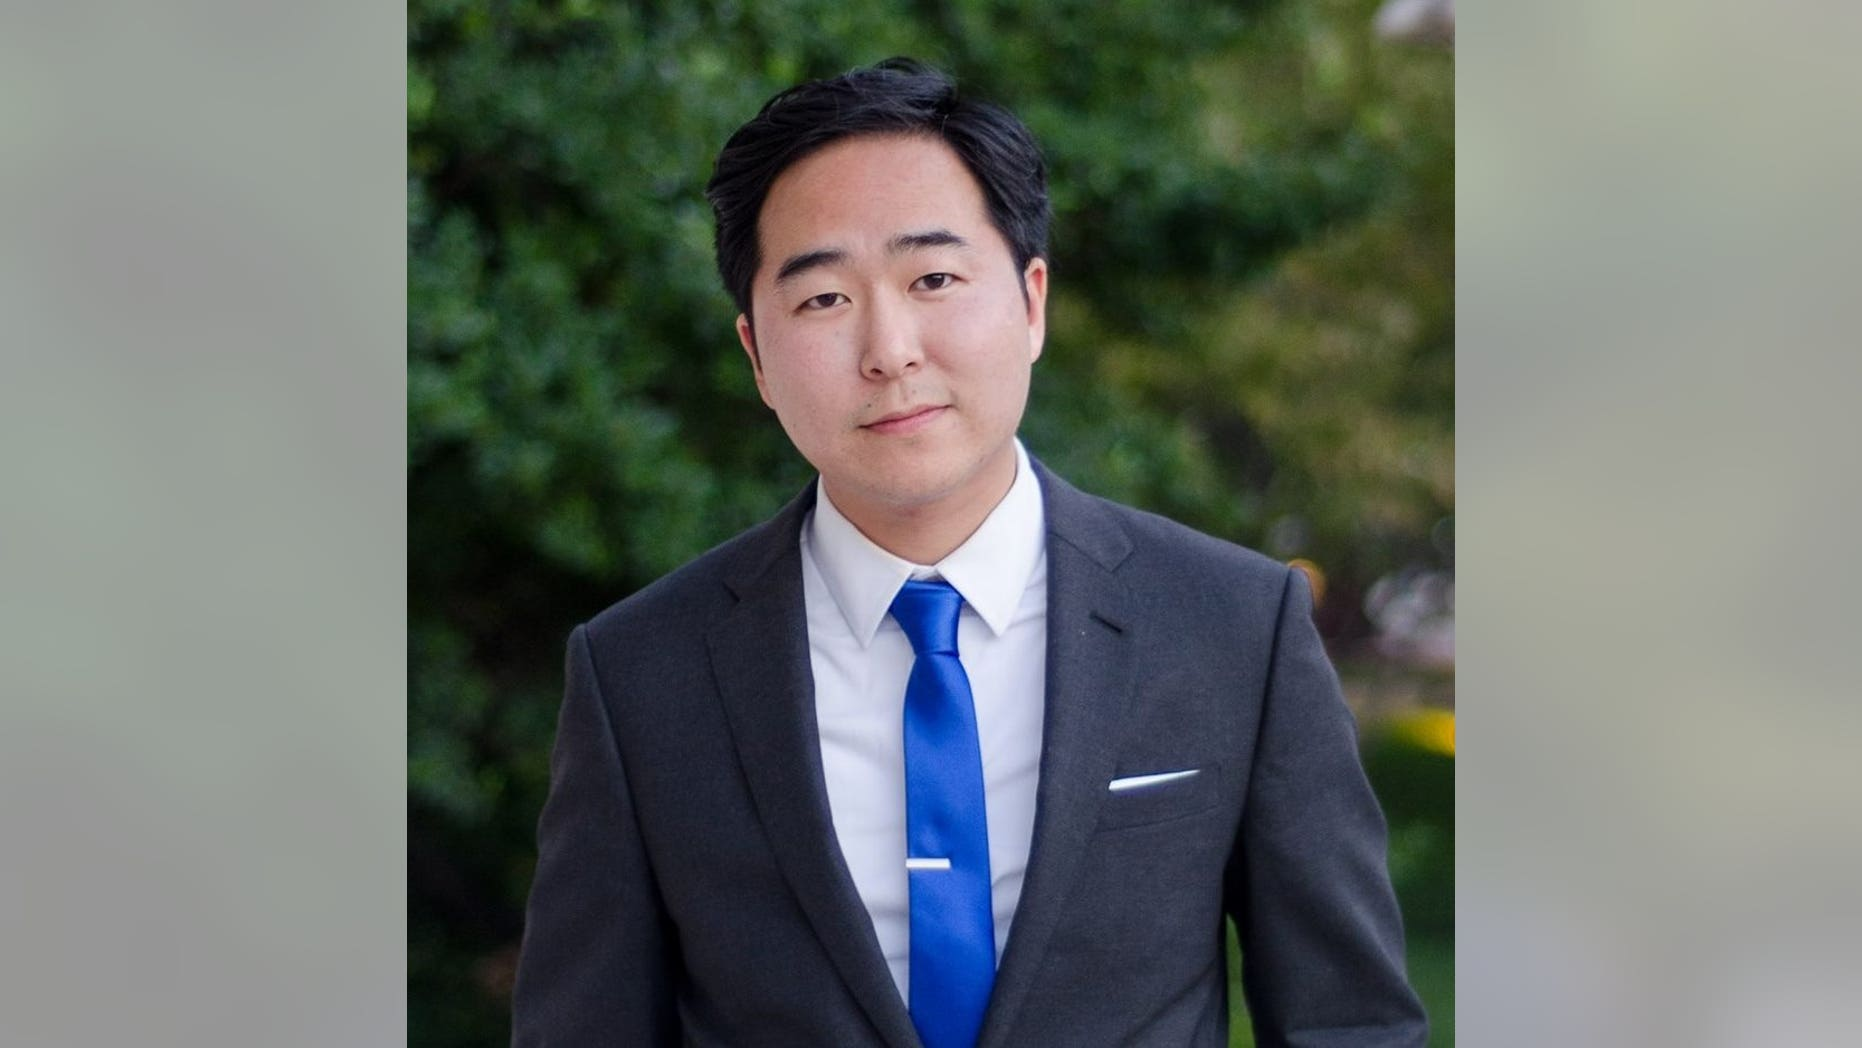 Democrat Andy Kim, running for New Jersey's 3rd Congressional District, is facing criticism for his comments about working under a Republican administration.